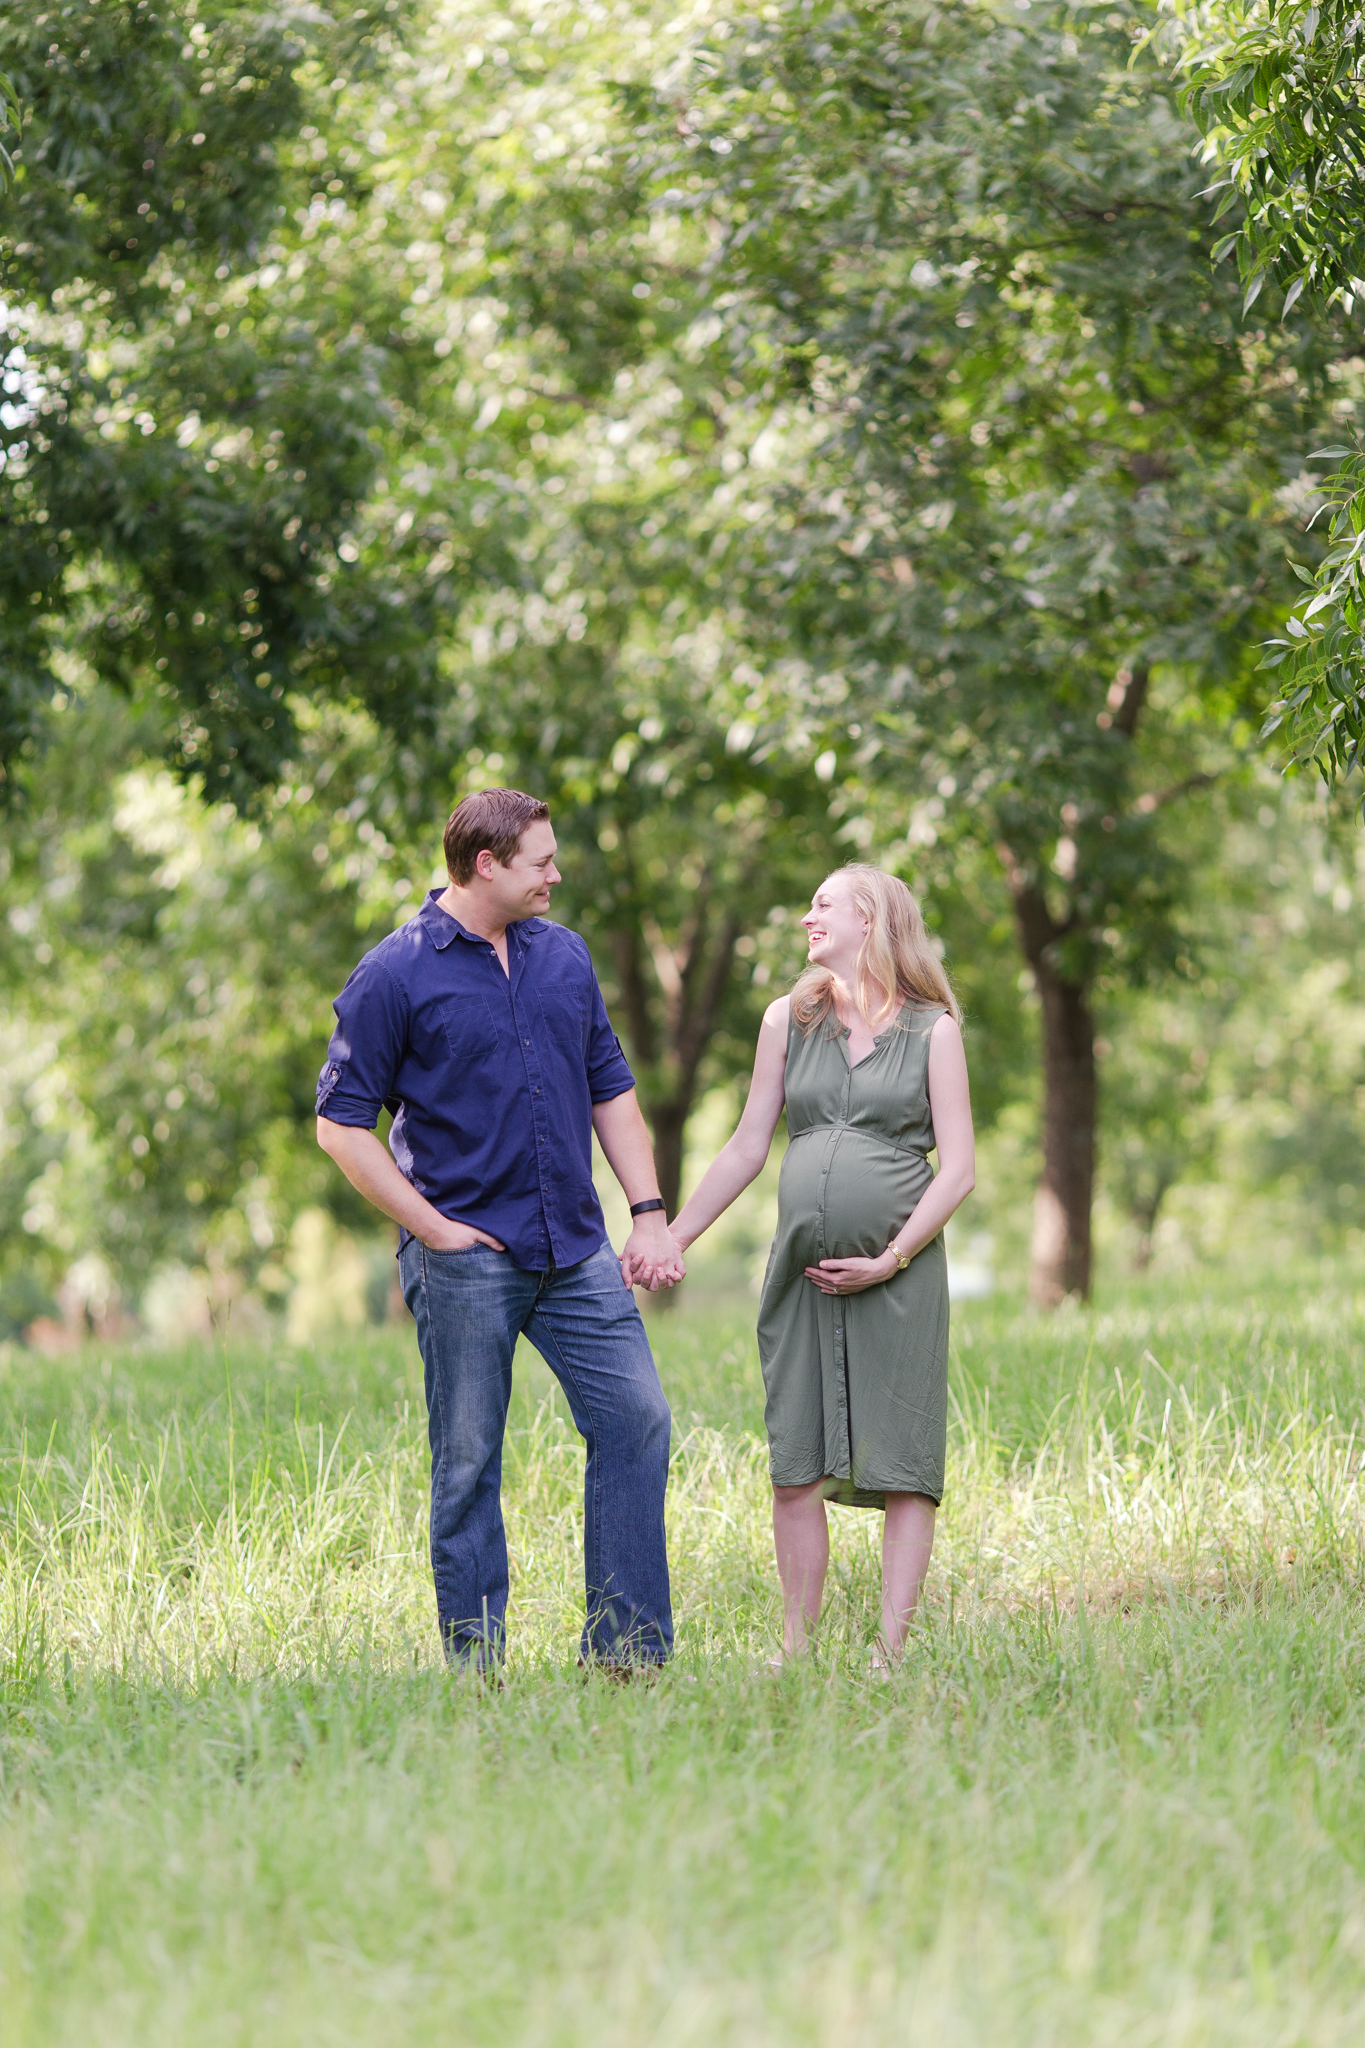 20170813-outdoor-maternity-photo-session-greenville-sc-4.jpg